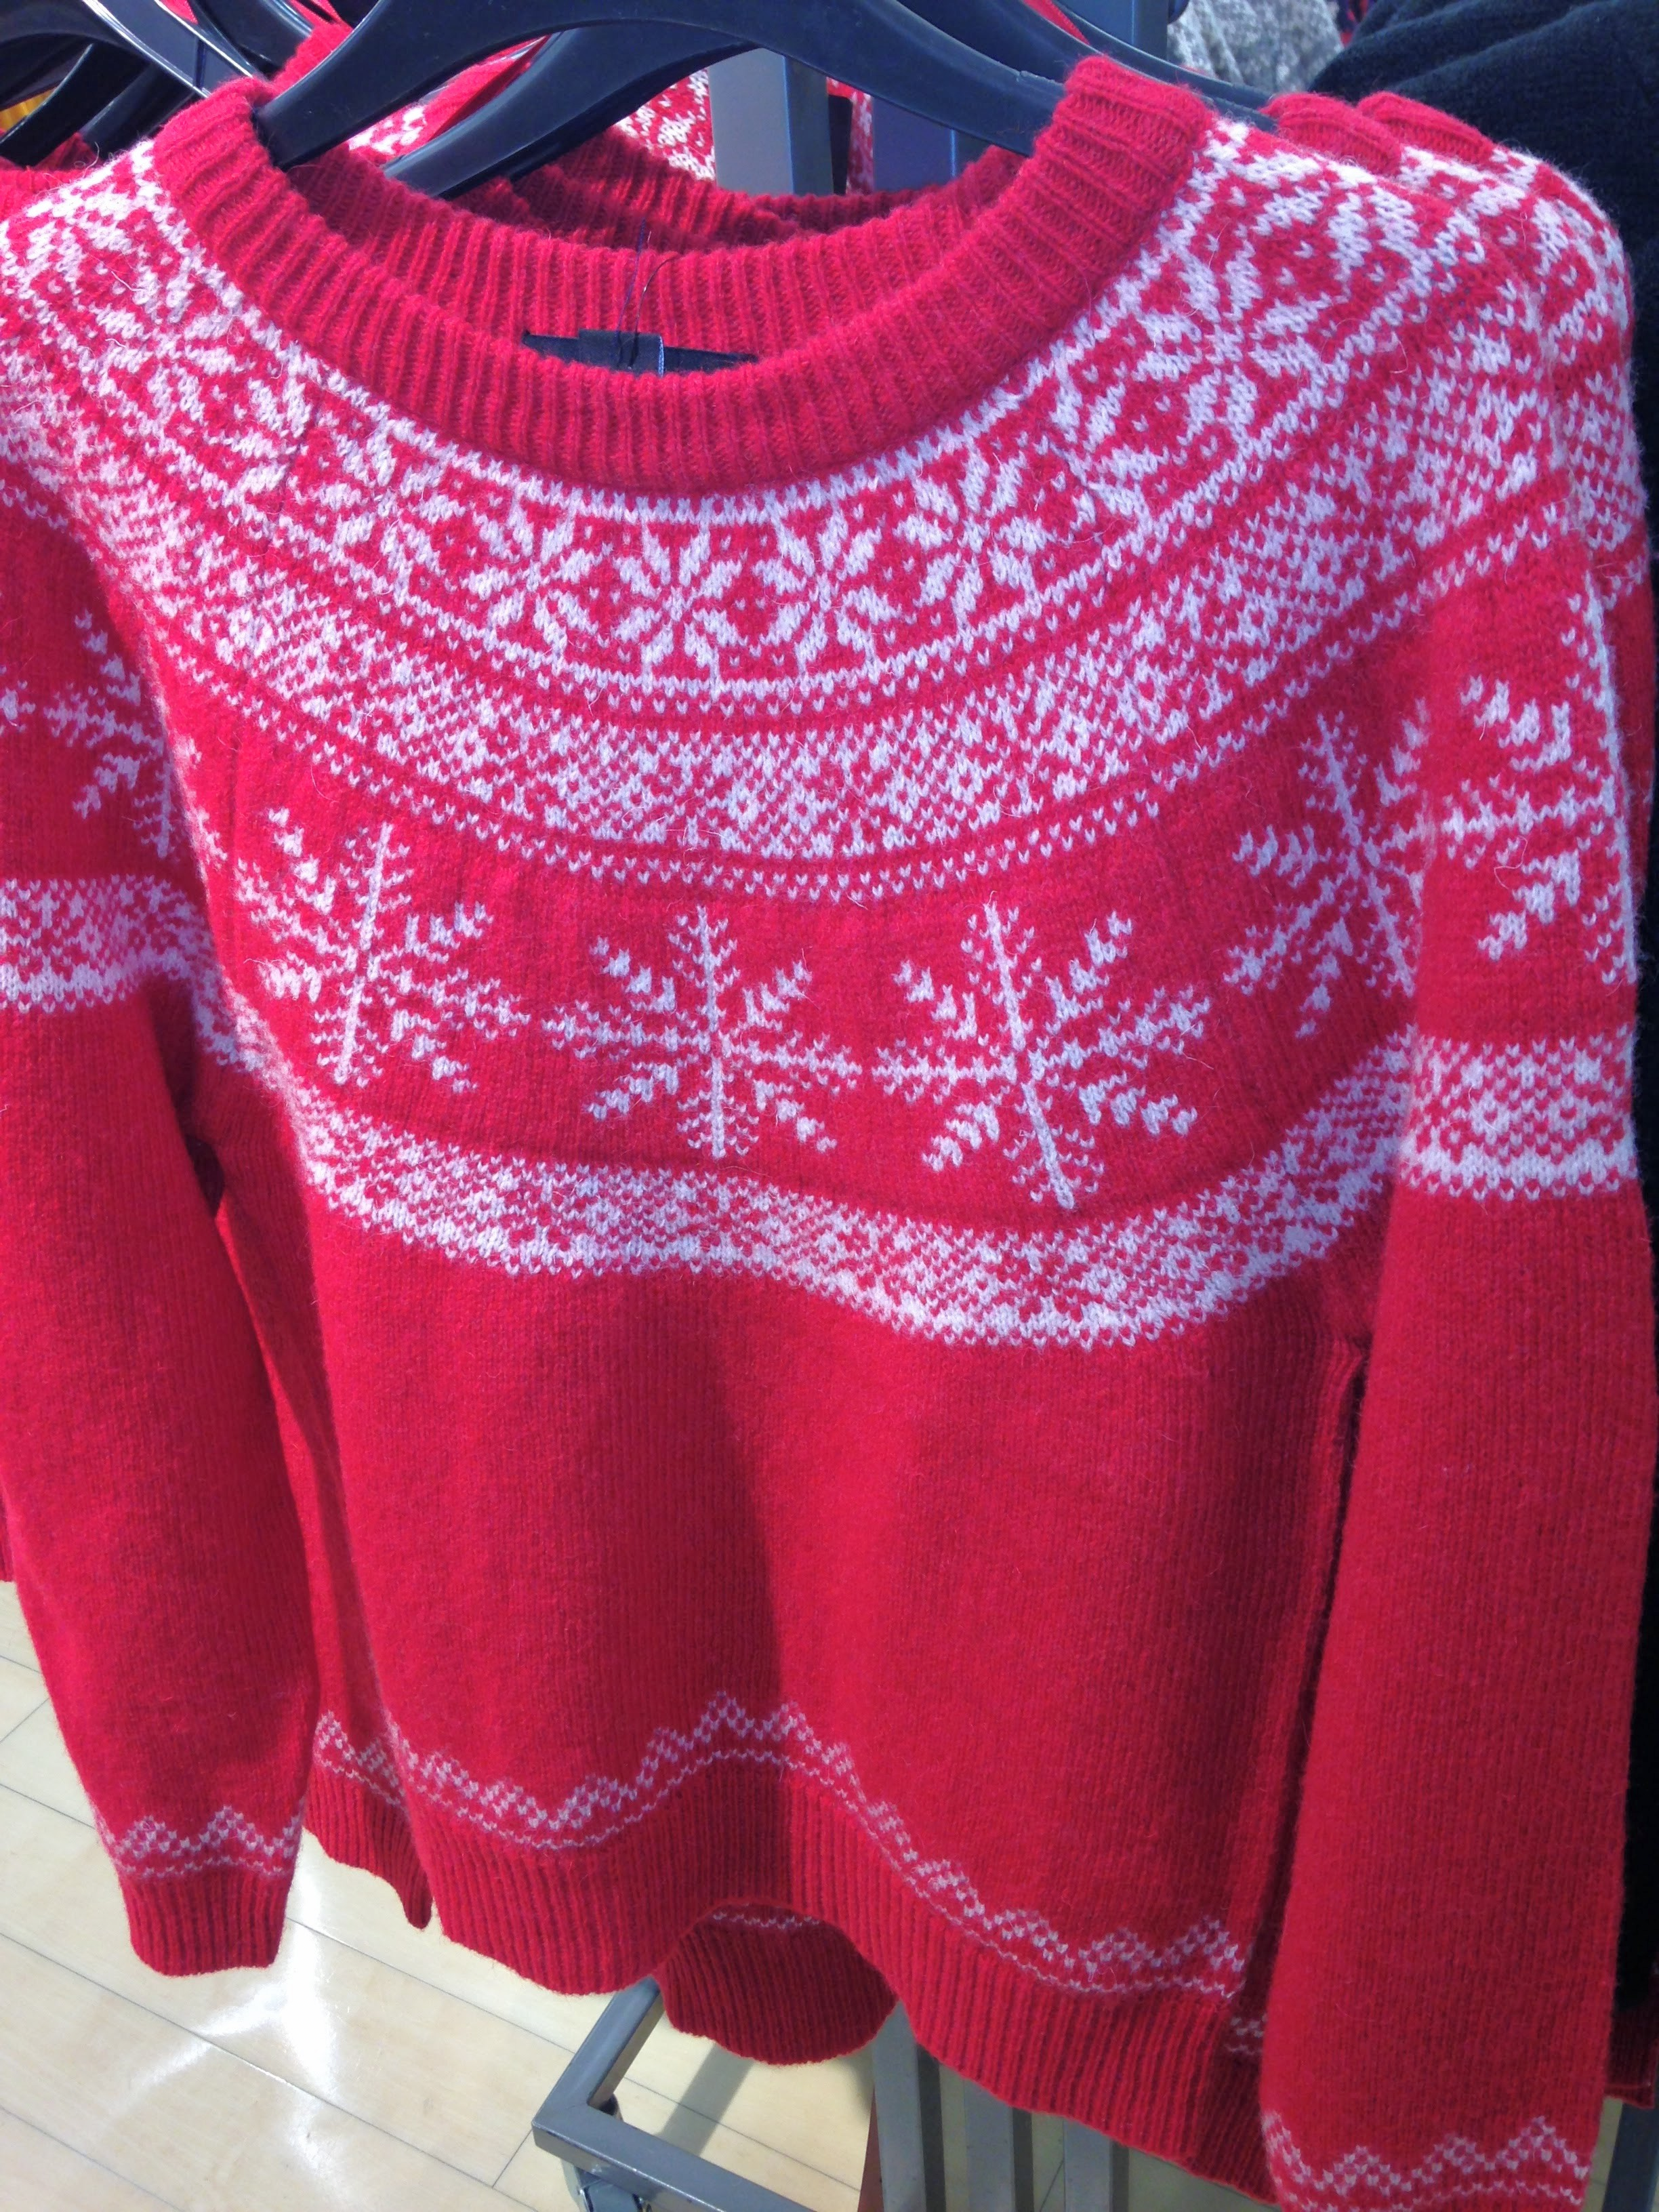 Bright Red winter 100% wool sweater from Penneys. Great value €18